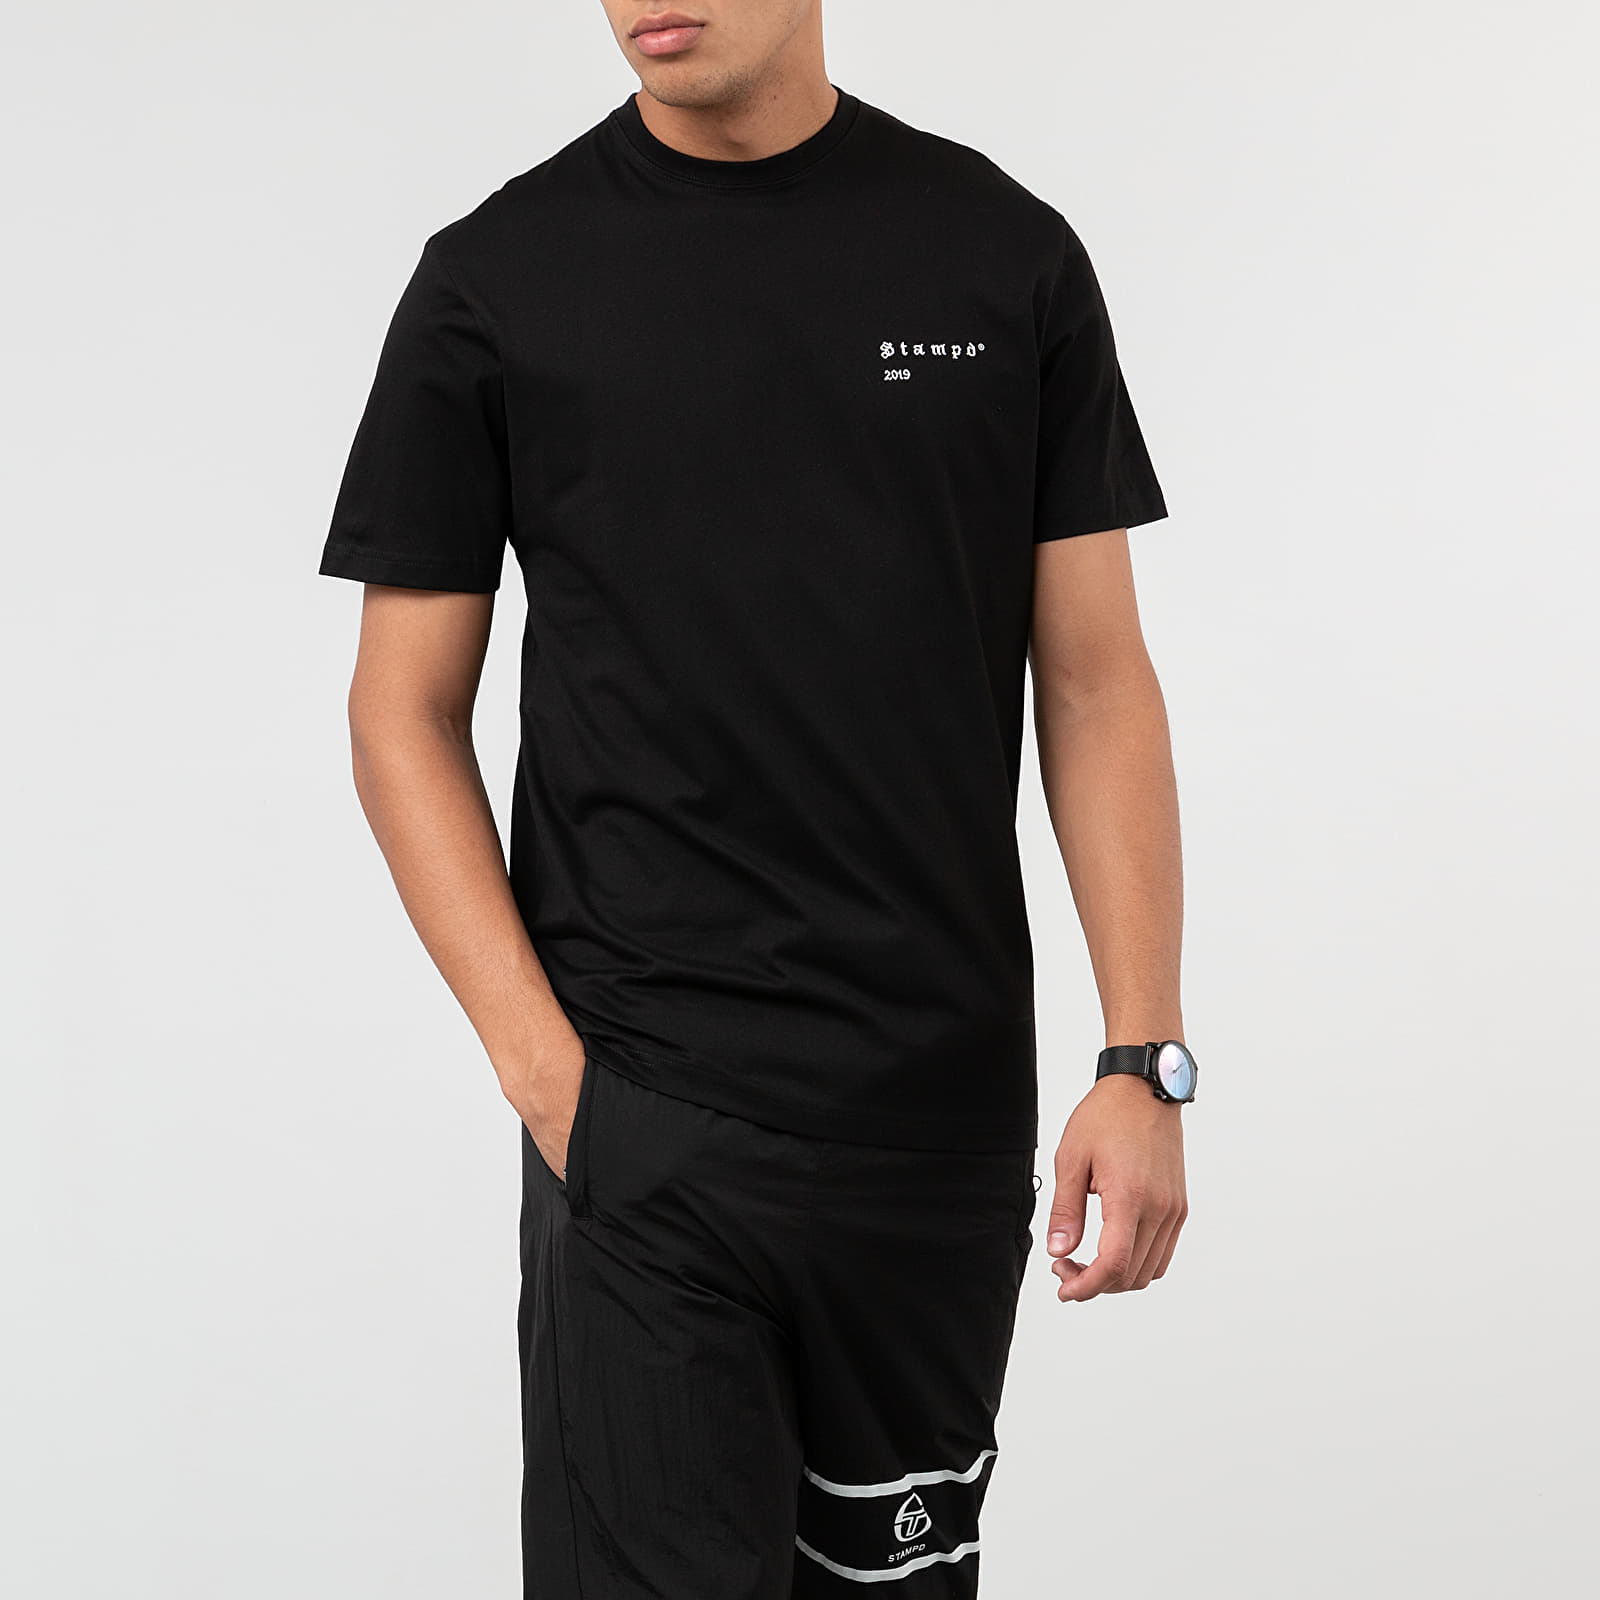 STAMPD Don't Sweat It Tee